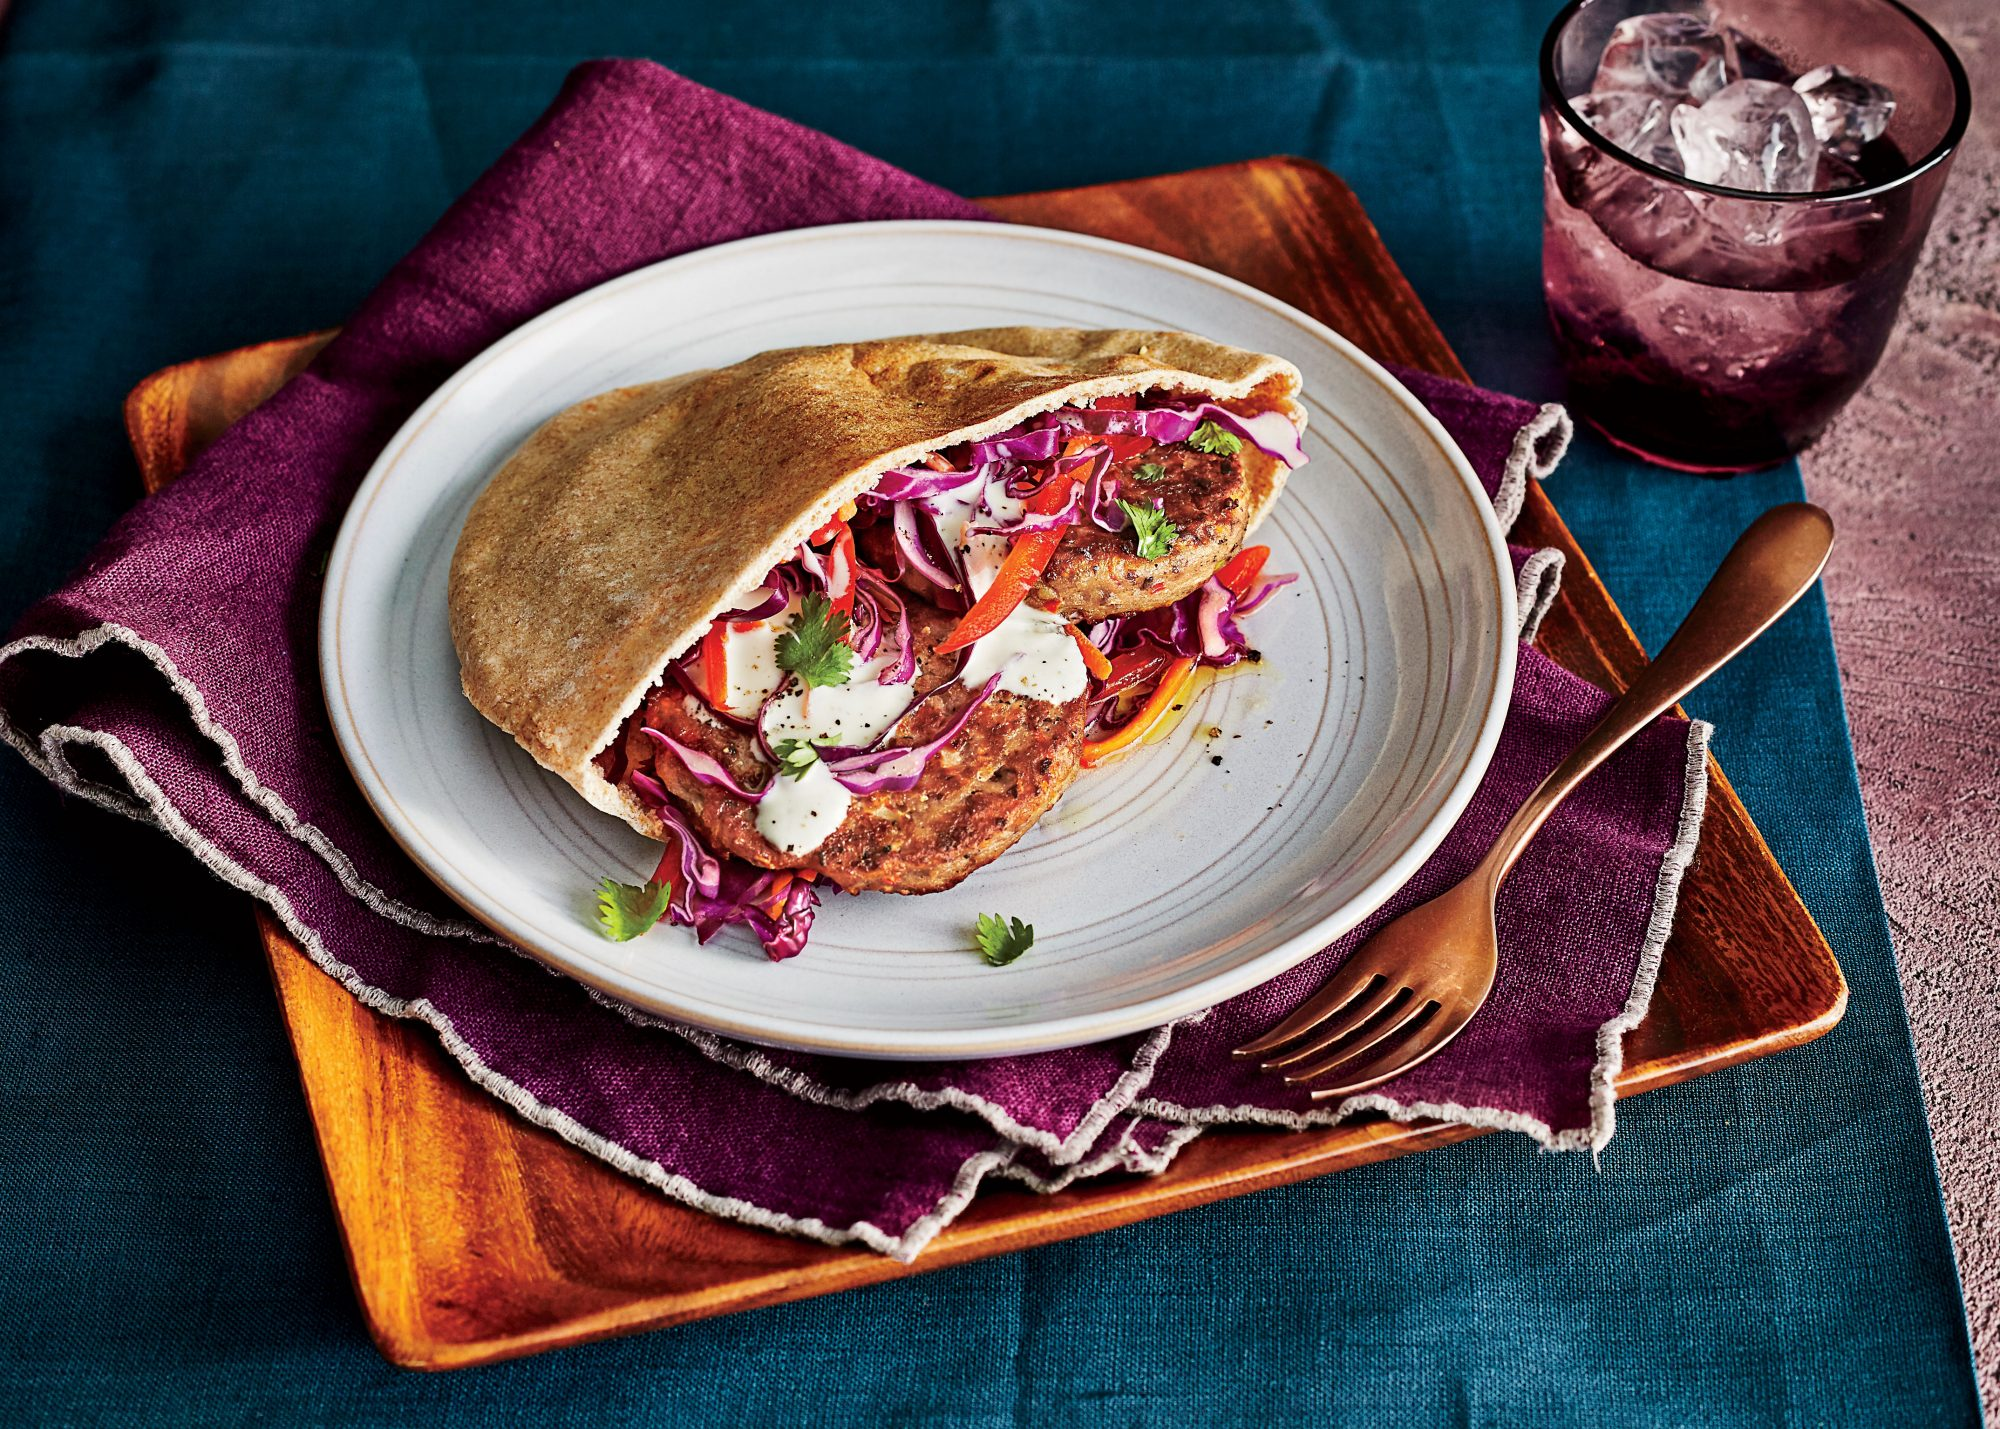 Black-Eyed Pea Fritter Sandwiches with Slaw Recipe